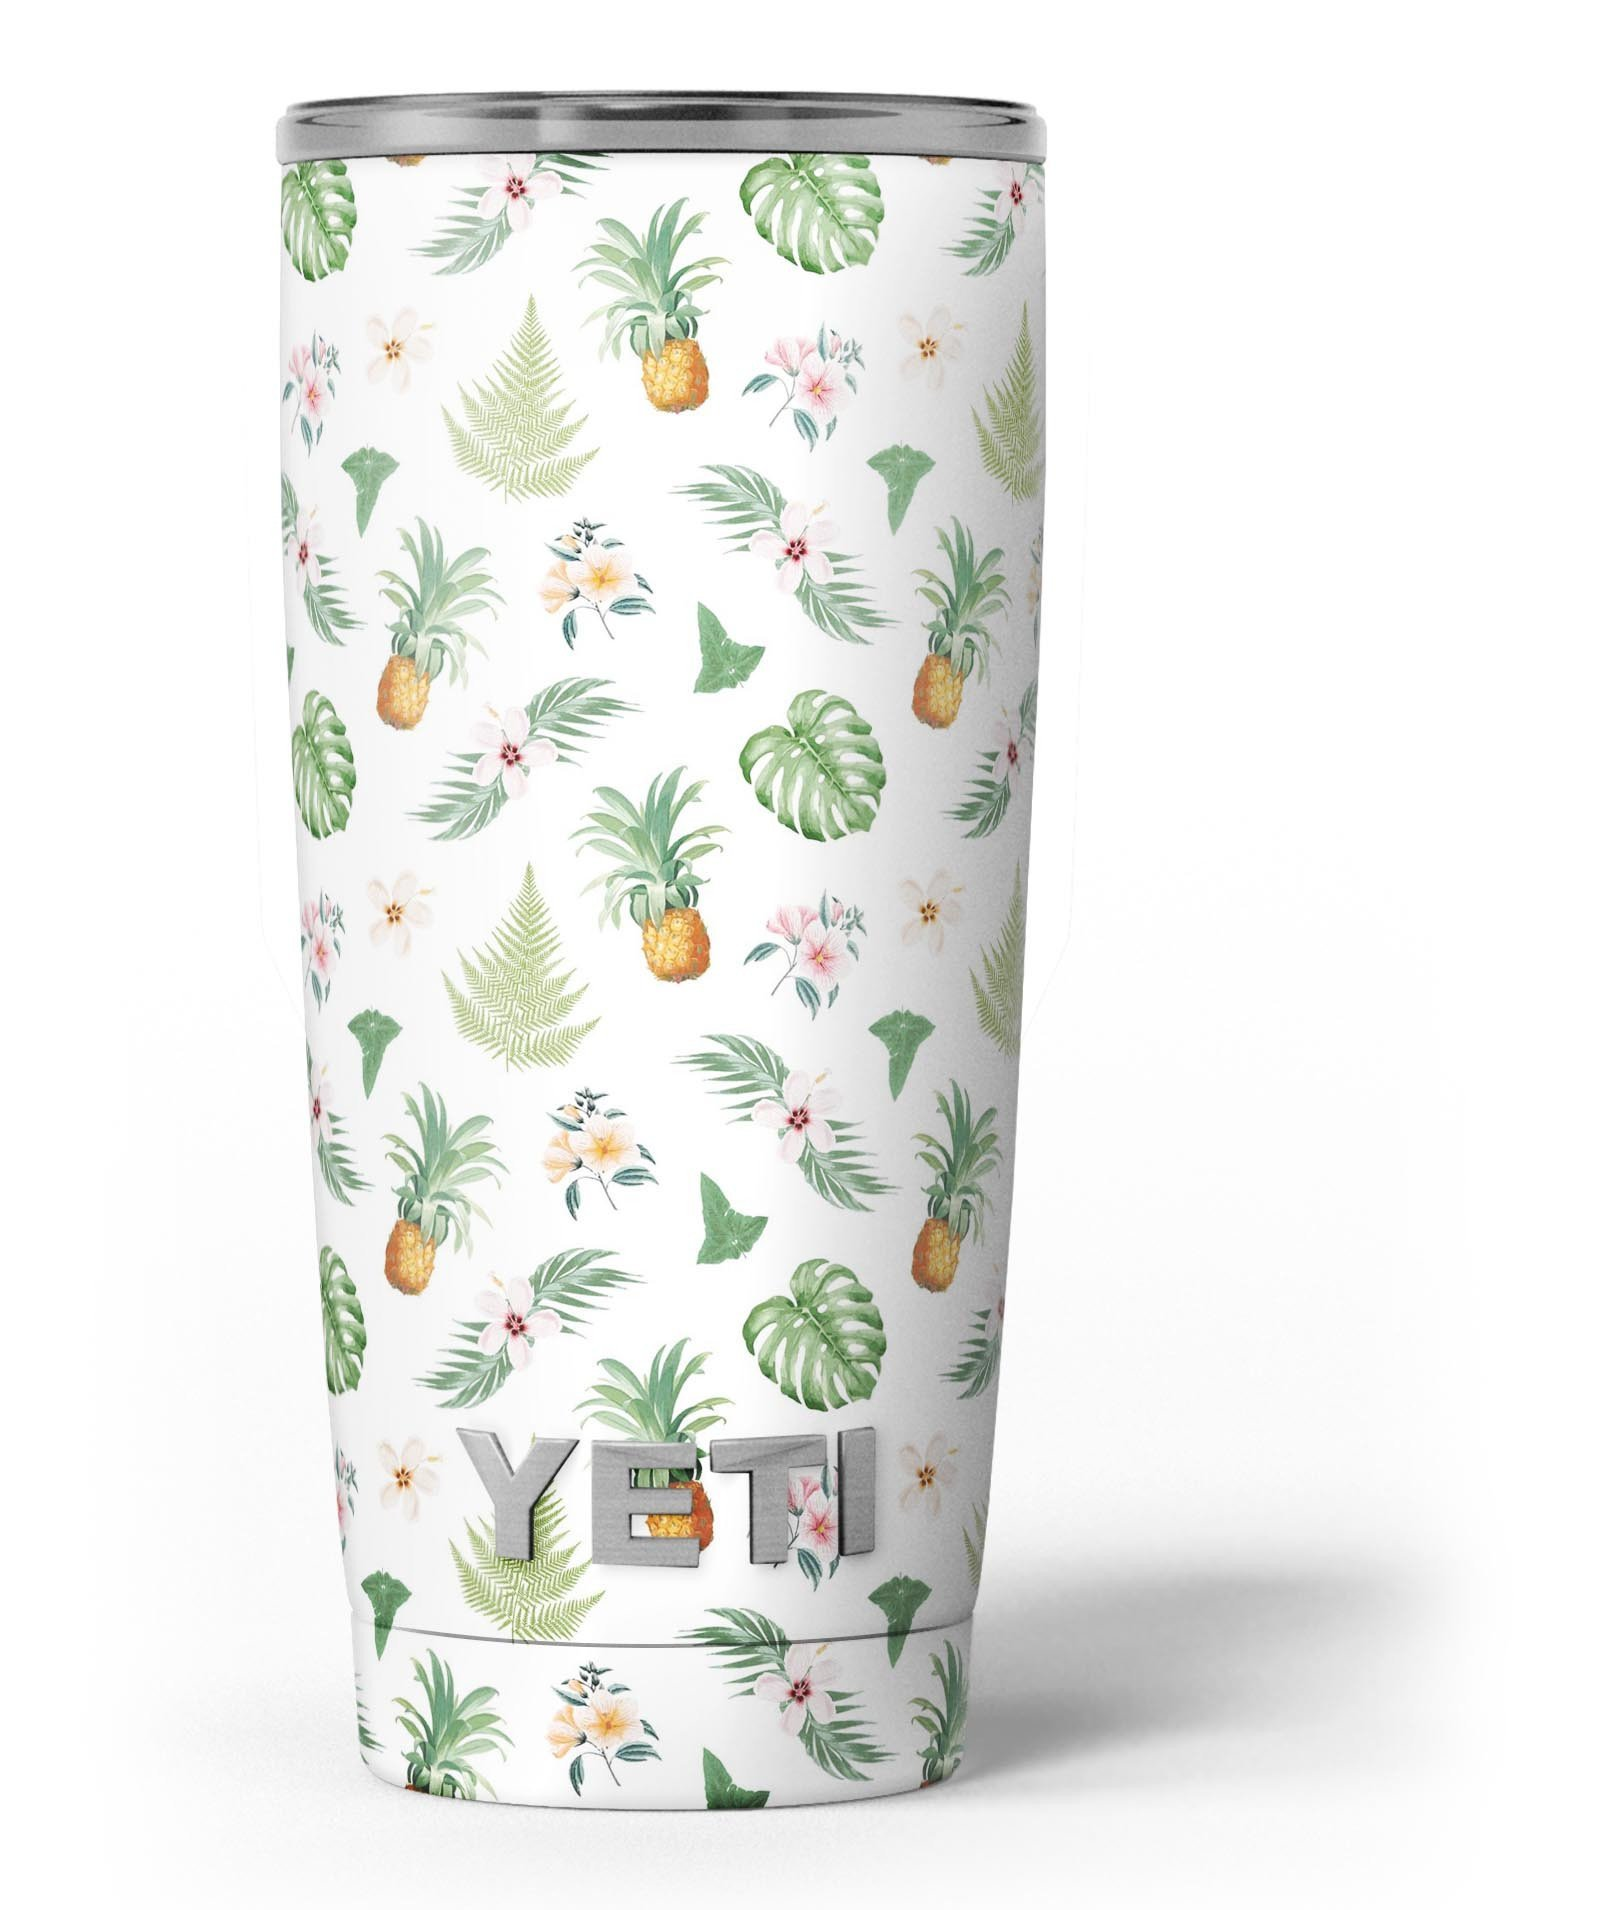 Image of The Tropical Pineapple and Floral Pattern - Skin Decal Vinyl Wrap Kit compatible with the Yeti Rambler Cooler Tumbler Cups